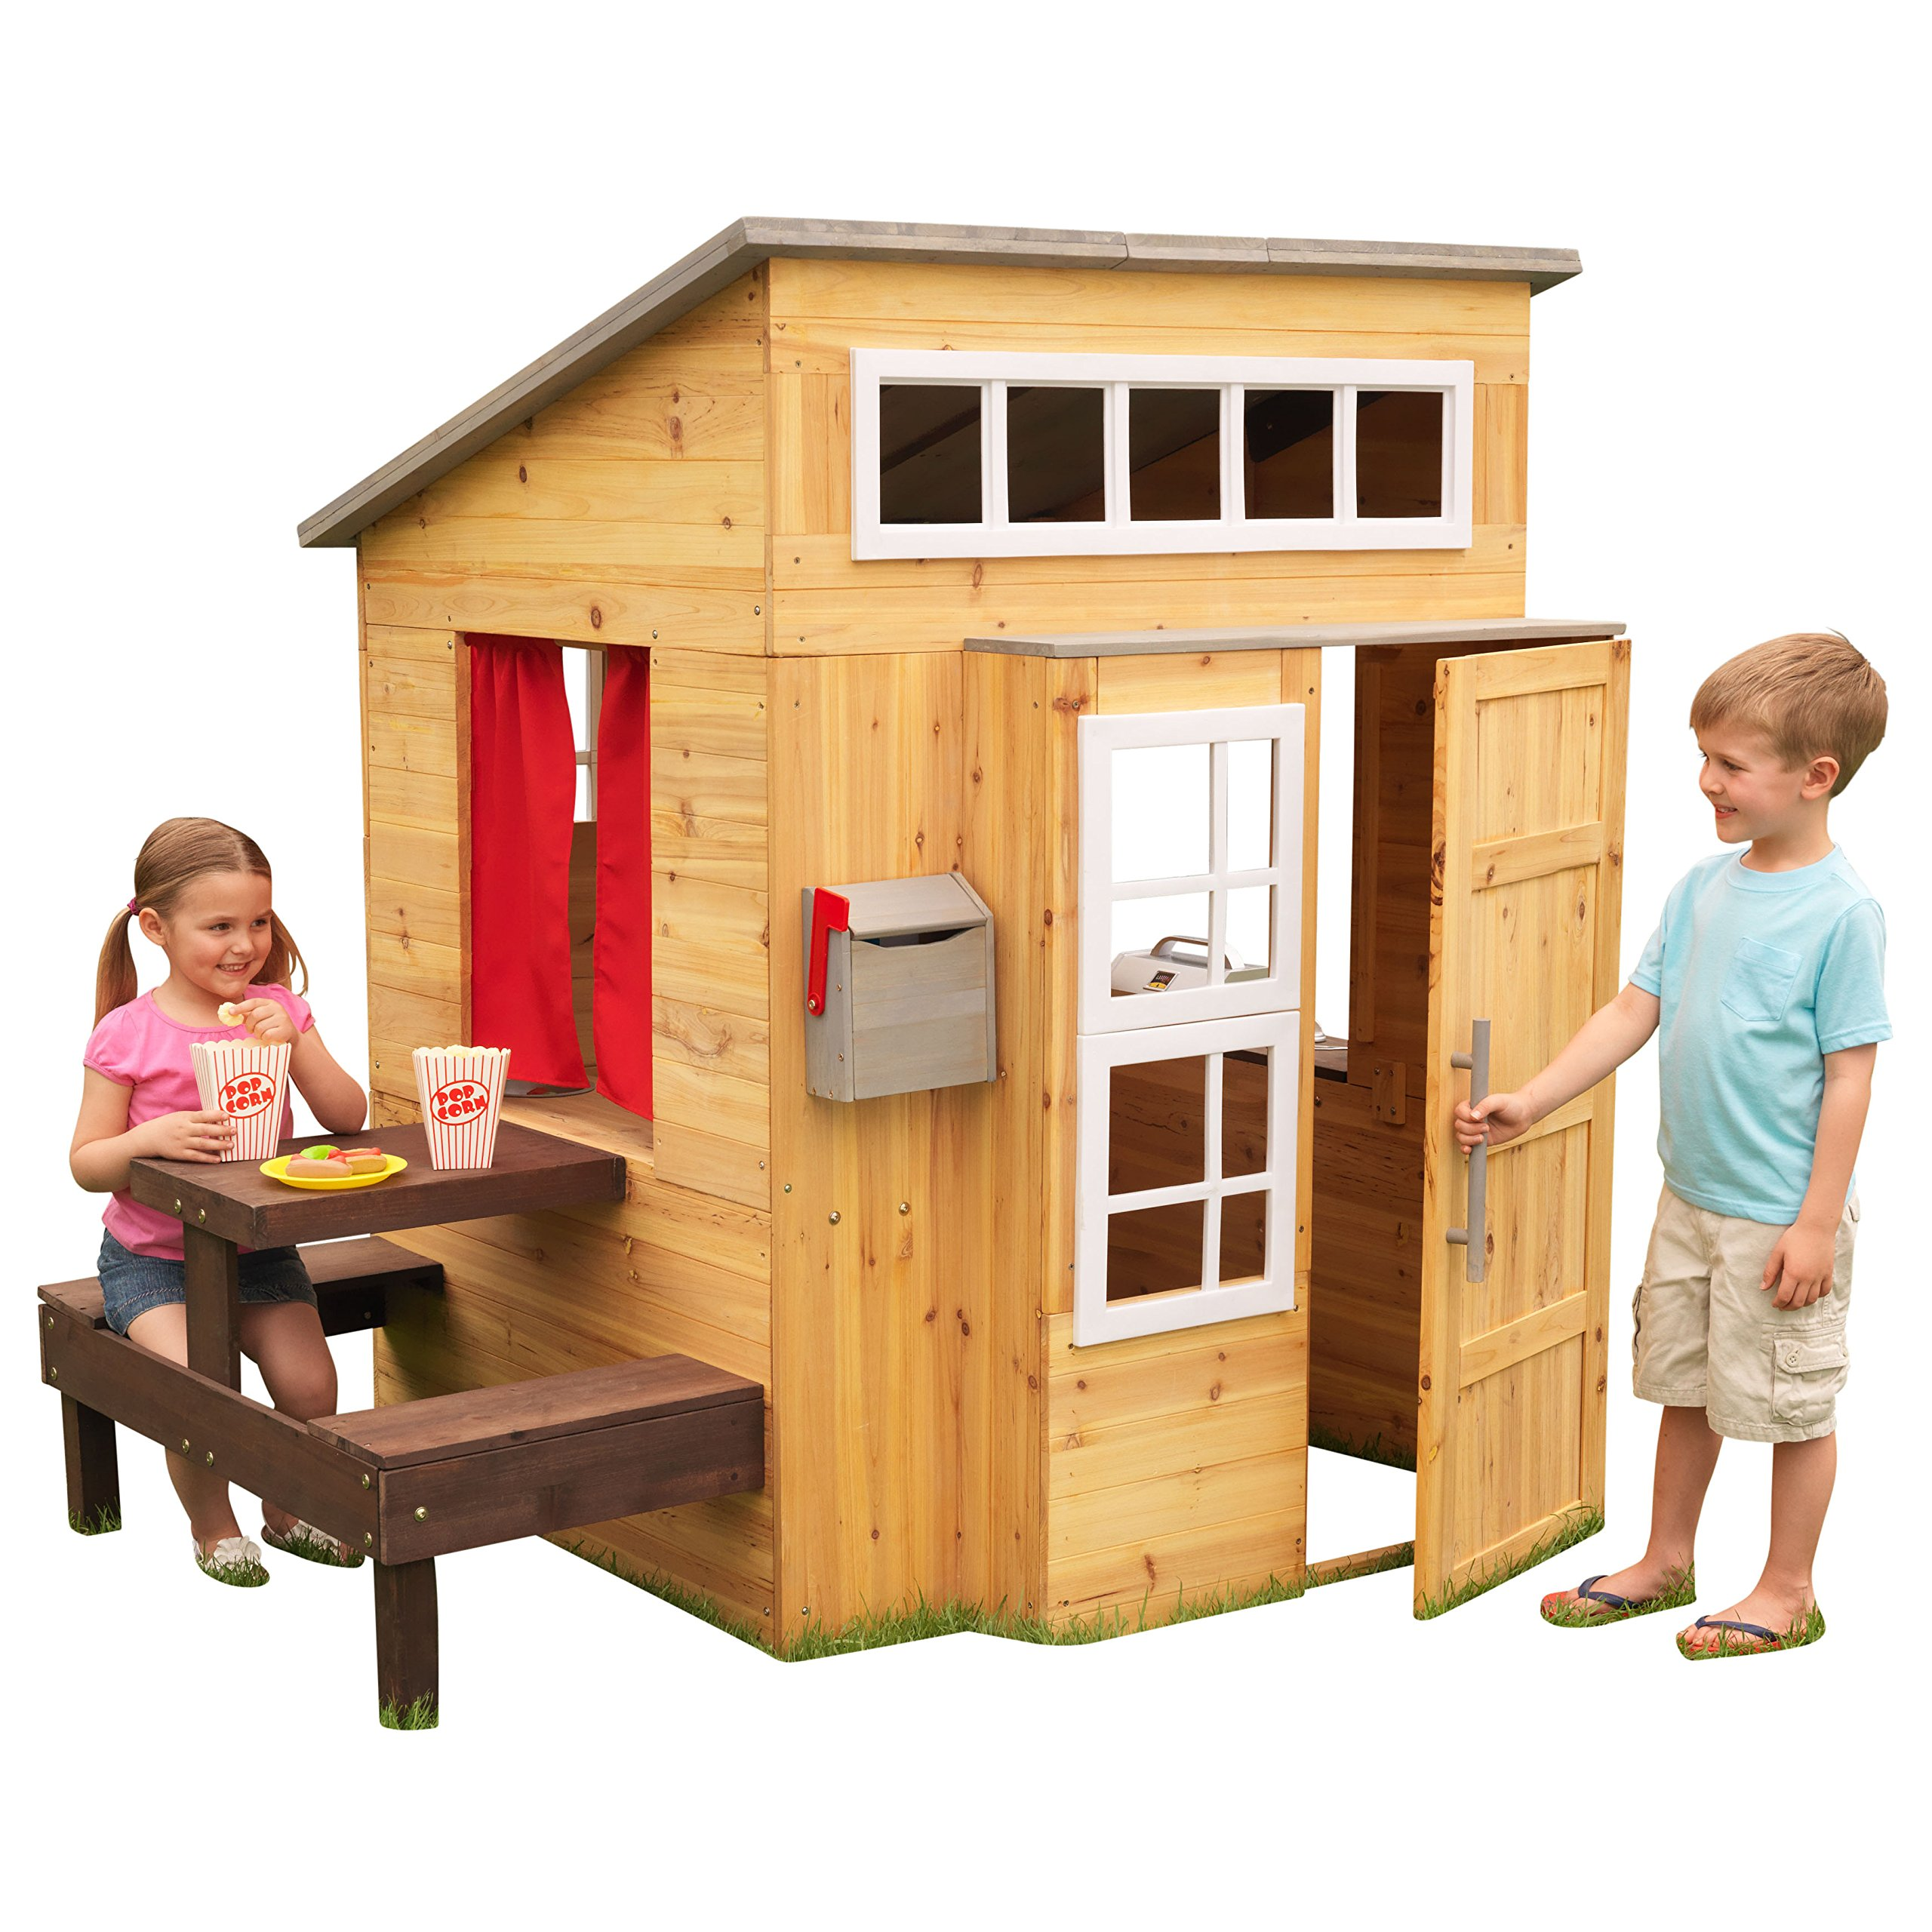 KidKraft Modern Outdoor Wooden Playhouse with Picnic Table, Mailbox and Outdoor Grill by KidKraft